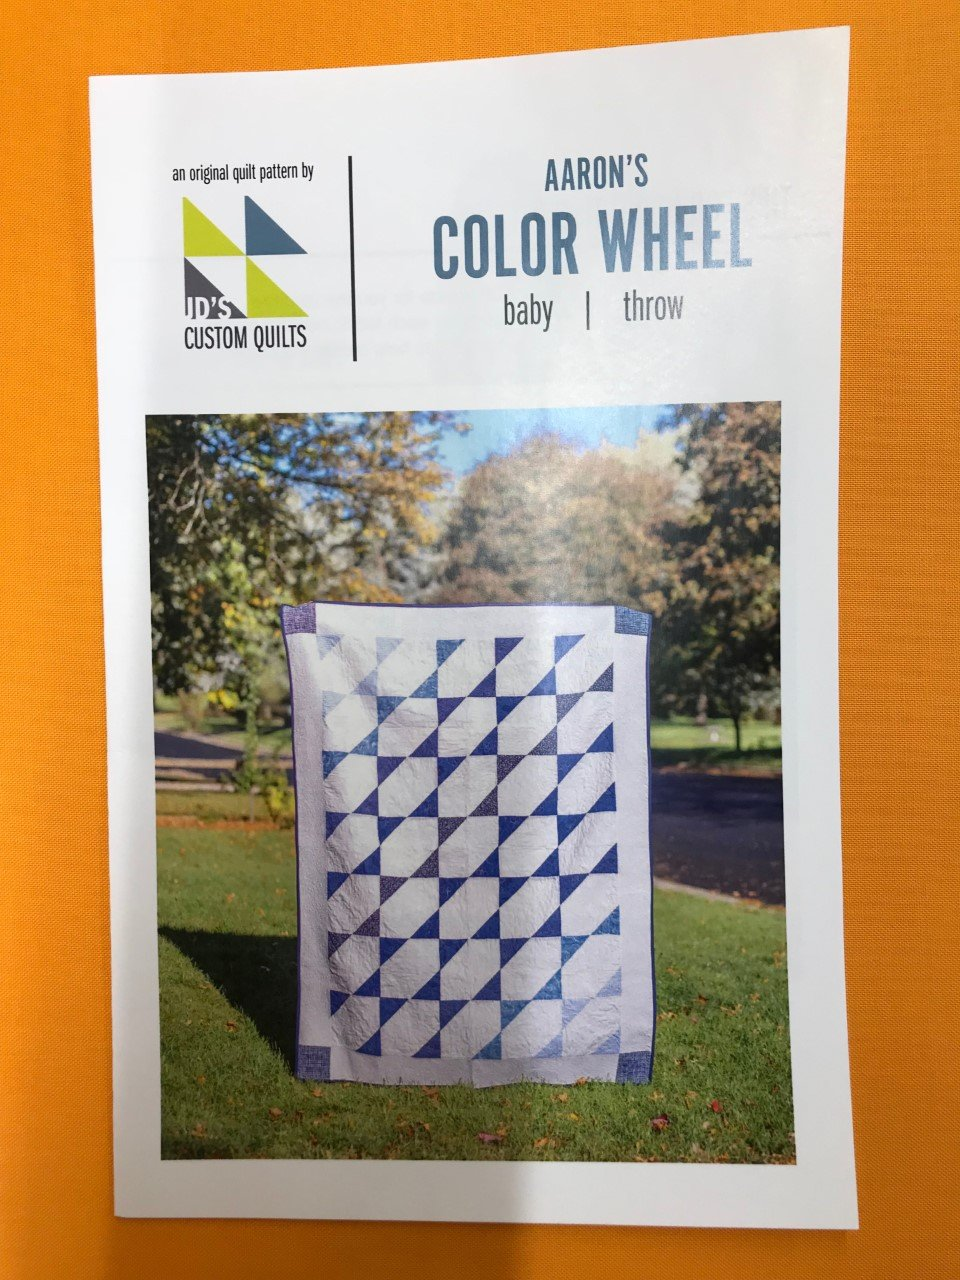 Aaron's Color Wheel Quilt Pattern